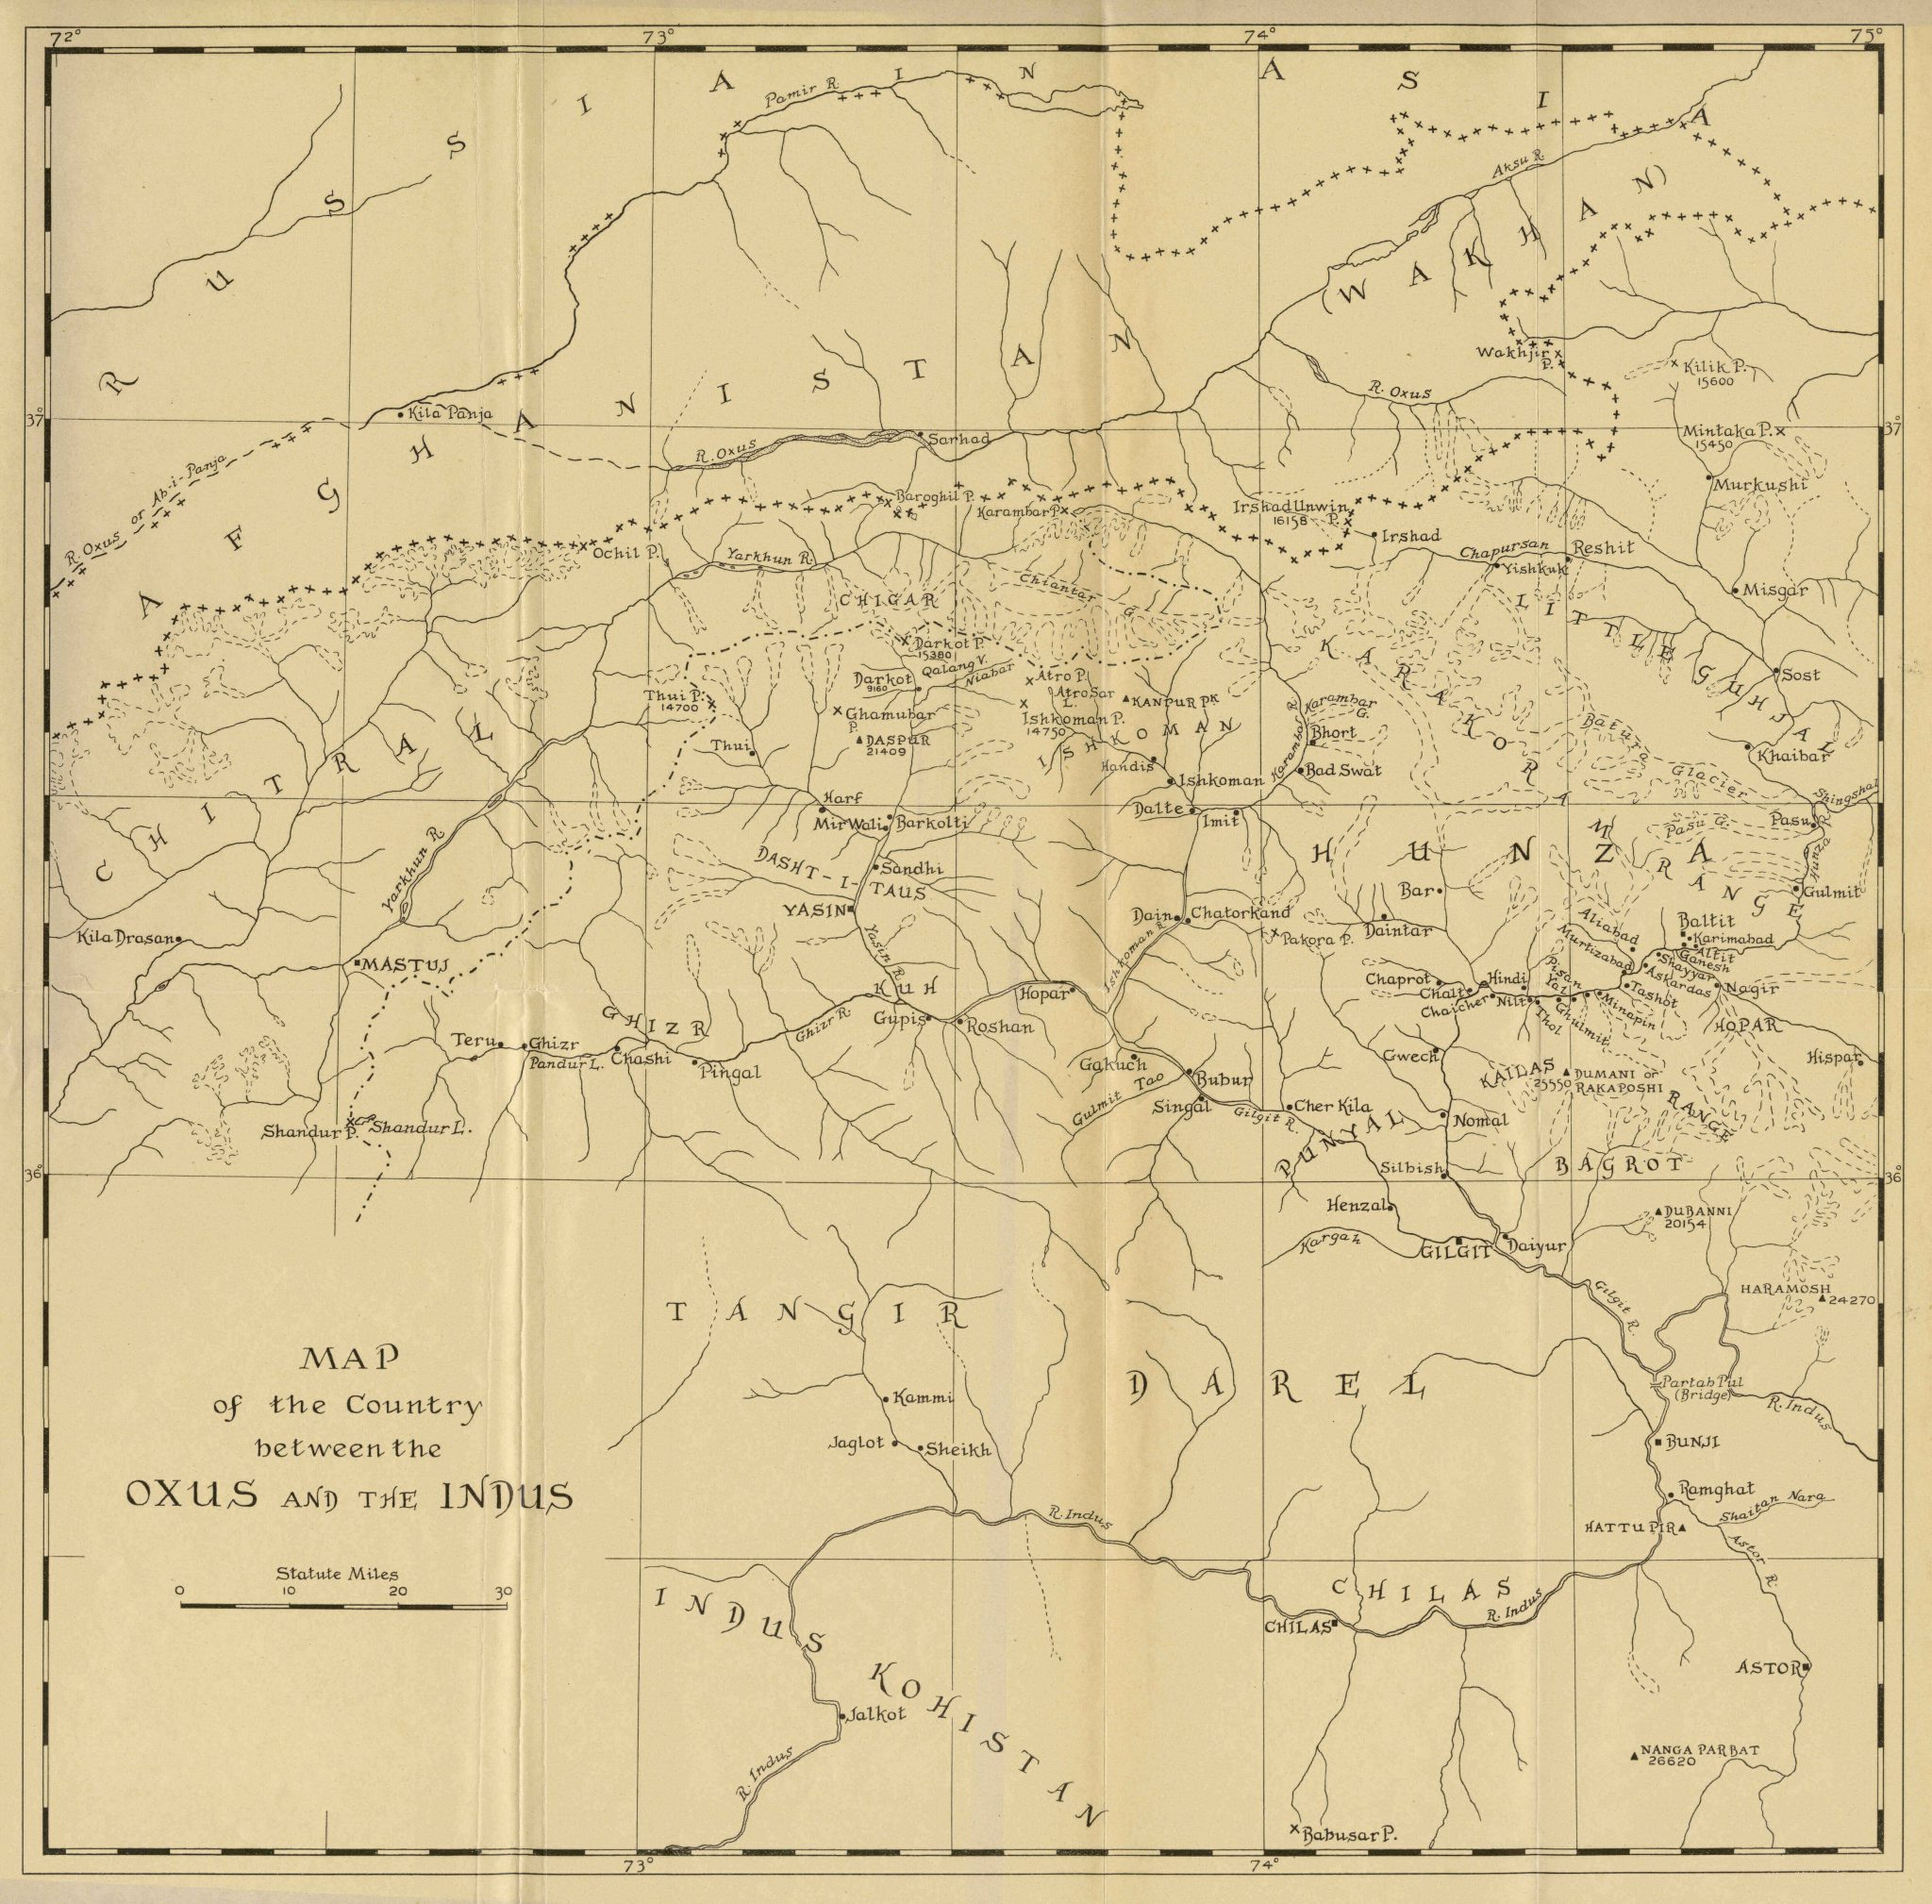 Map of the country between the Oxus and the Indus 1935